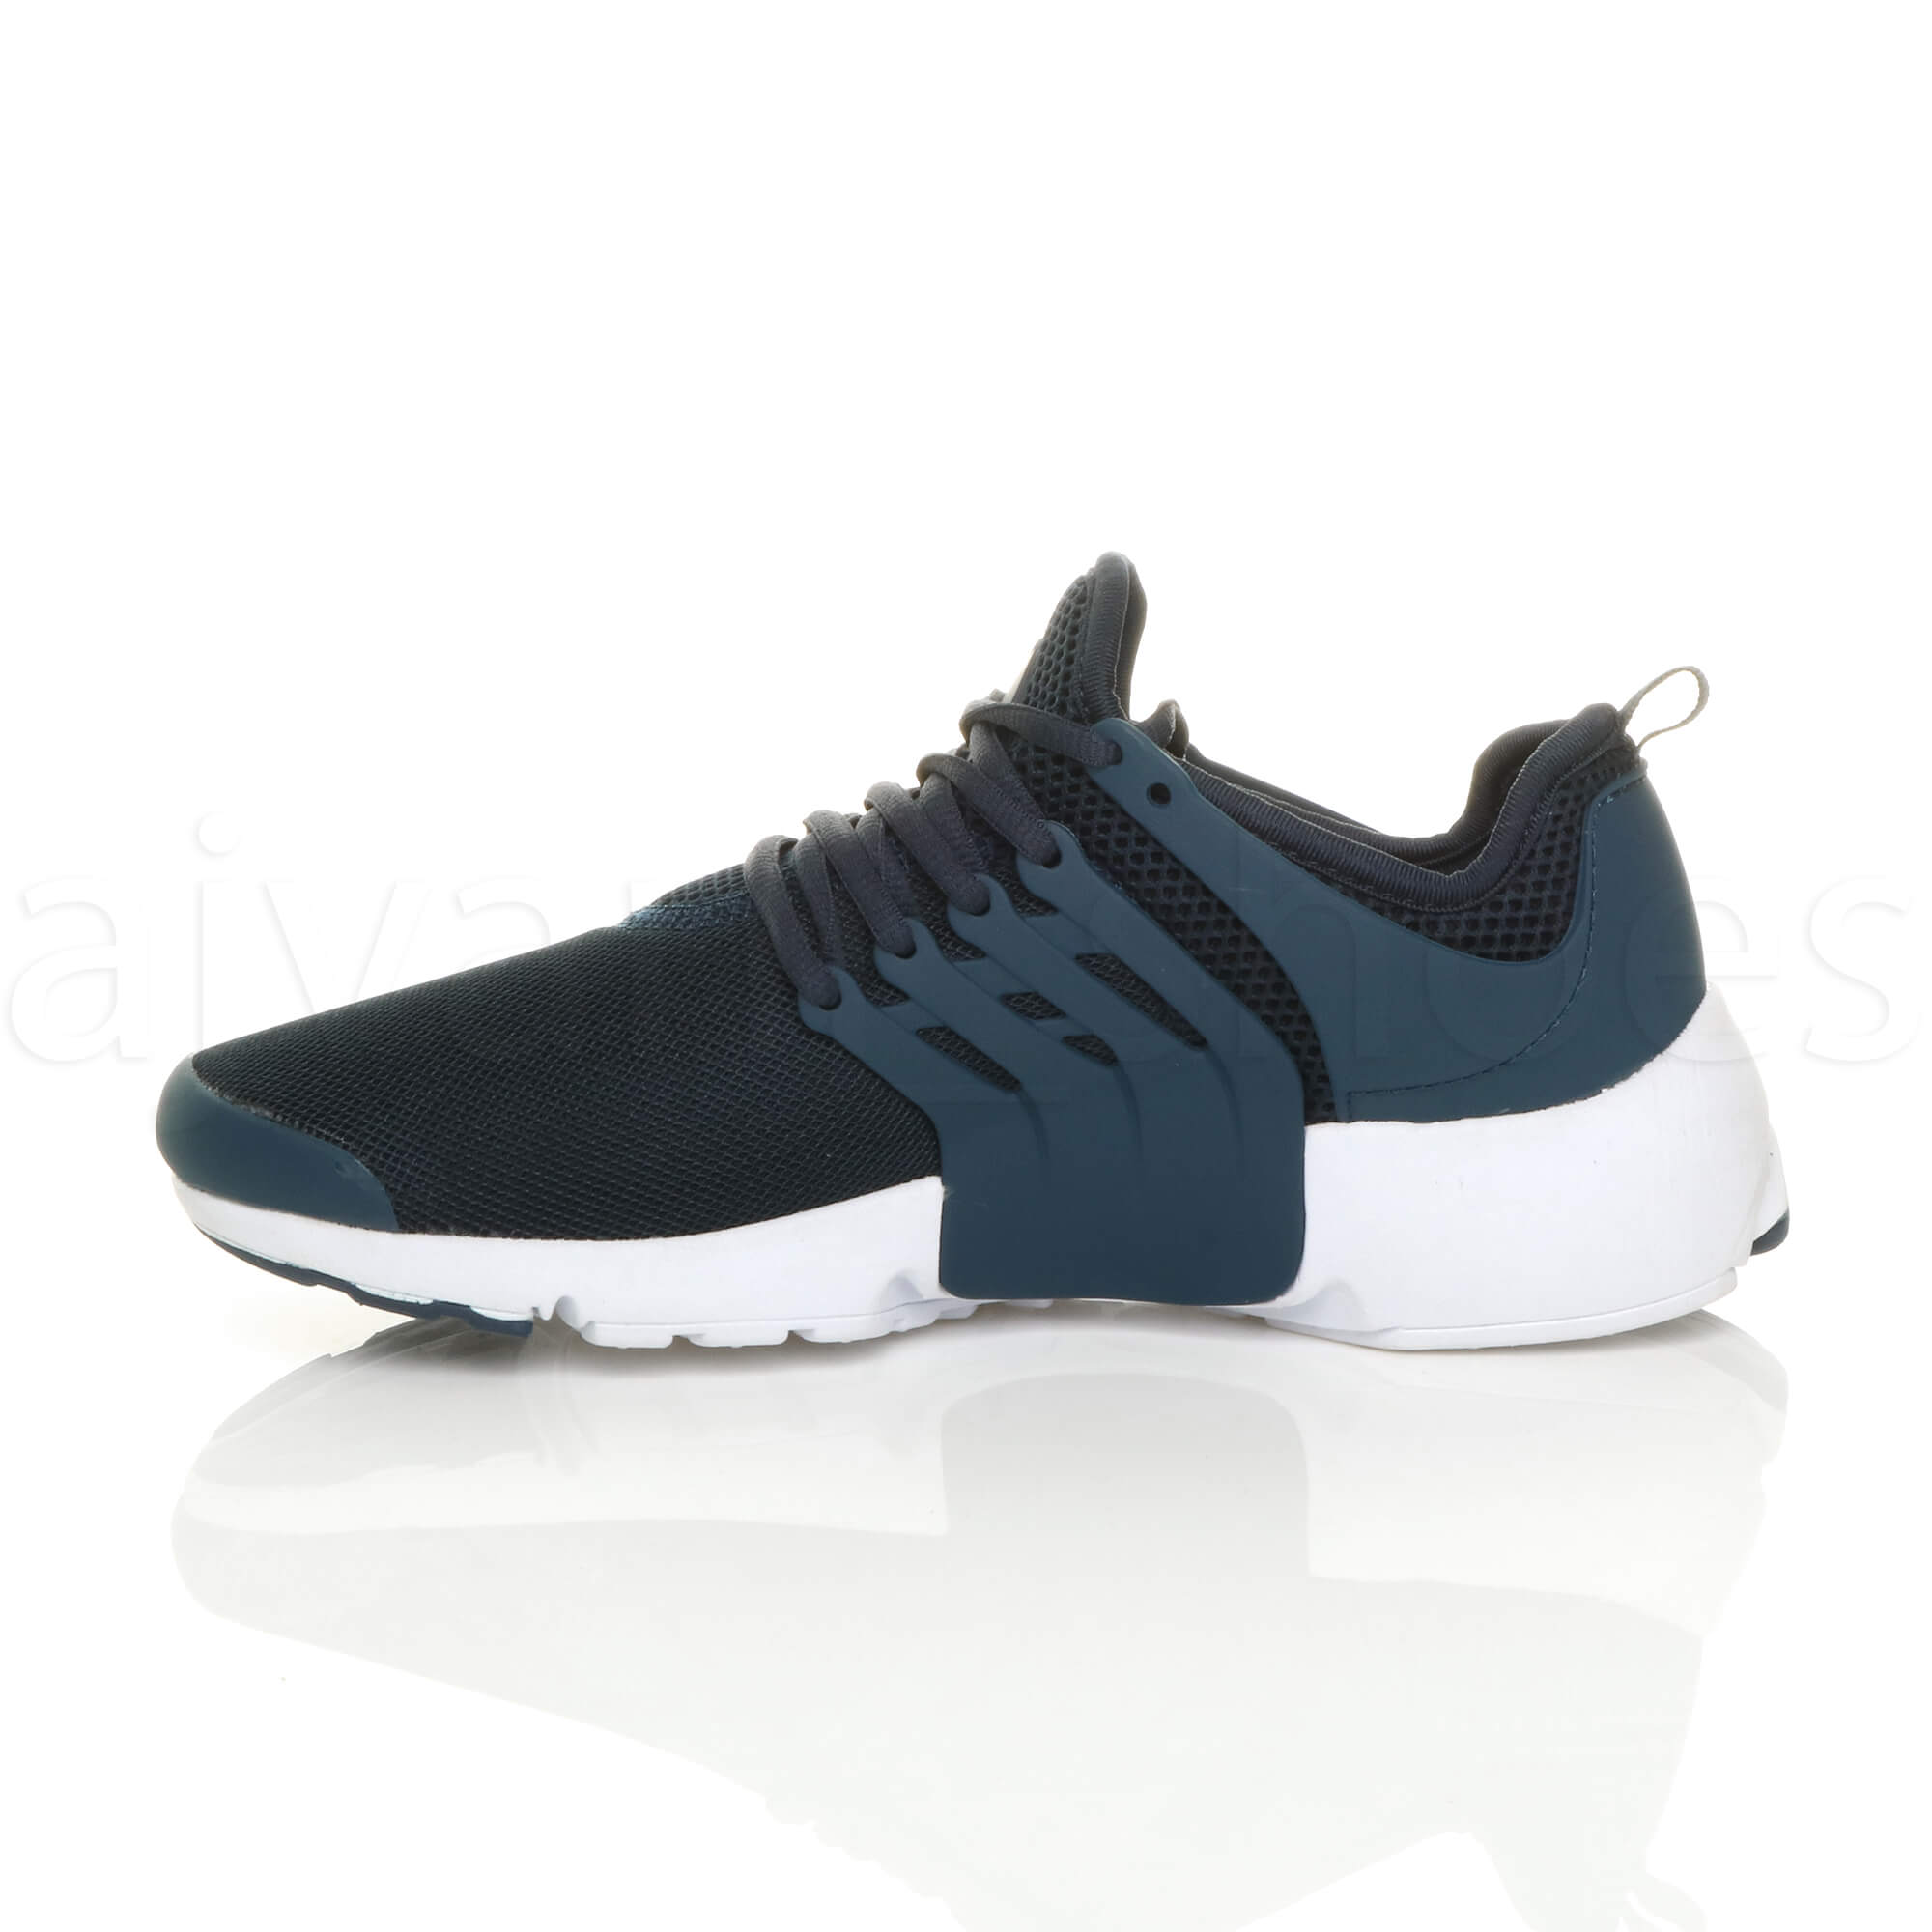 MENS-LACE-UP-SPORTS-GYM-FITNESS-RUNNING-FLEXIBLE-TRAINERS-CASUAL-SNEAKERS-SIZE thumbnail 36